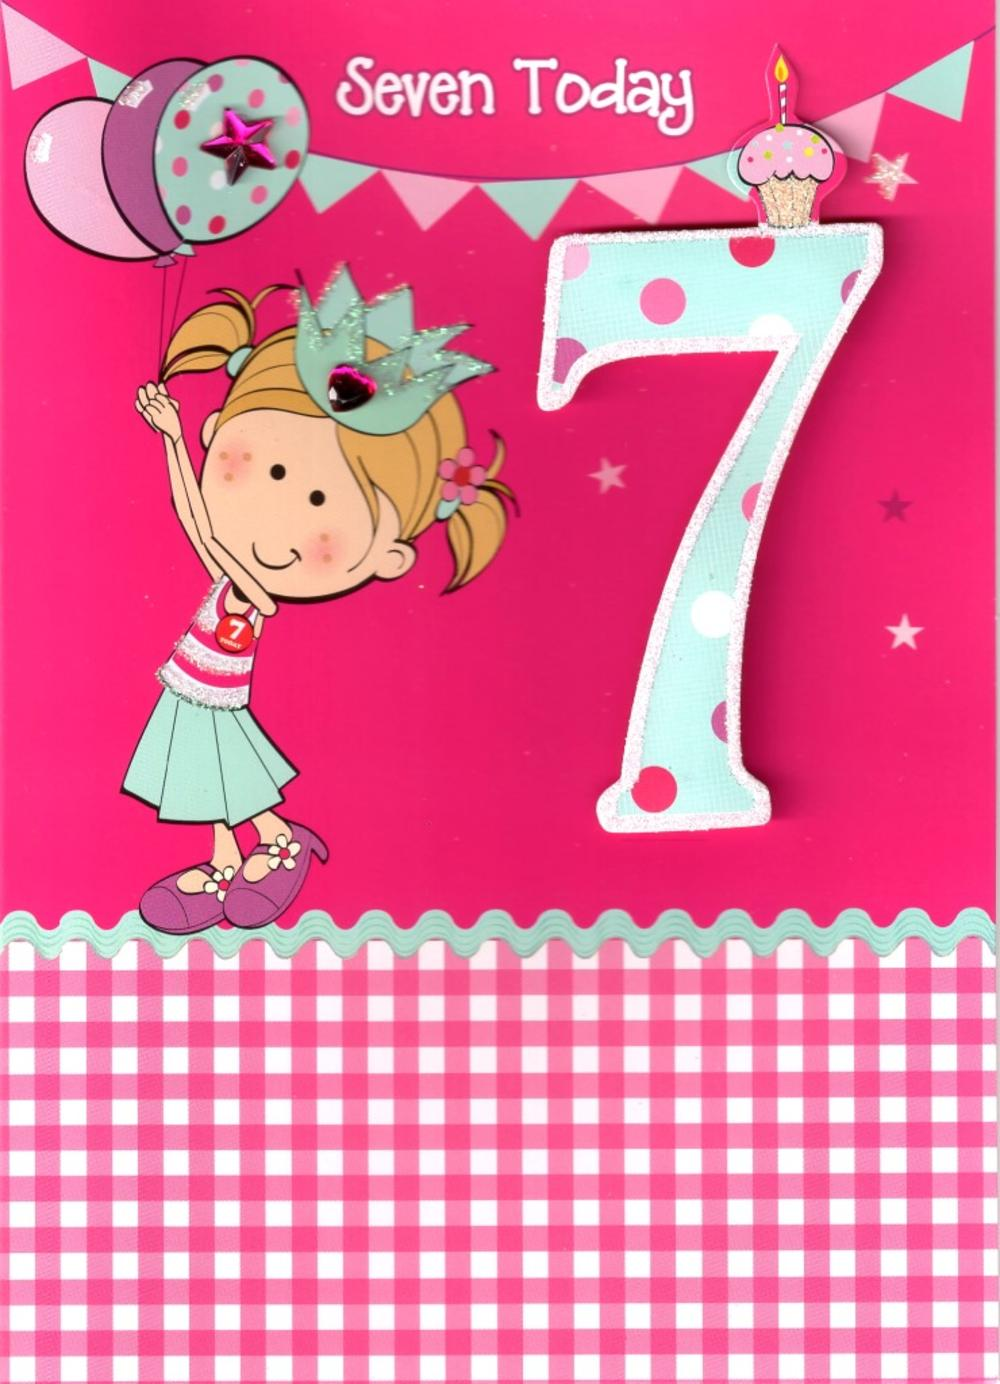 Girls 7th birthday 7 seven today card cards love kates girls 7th birthday 7 seven today card m4hsunfo